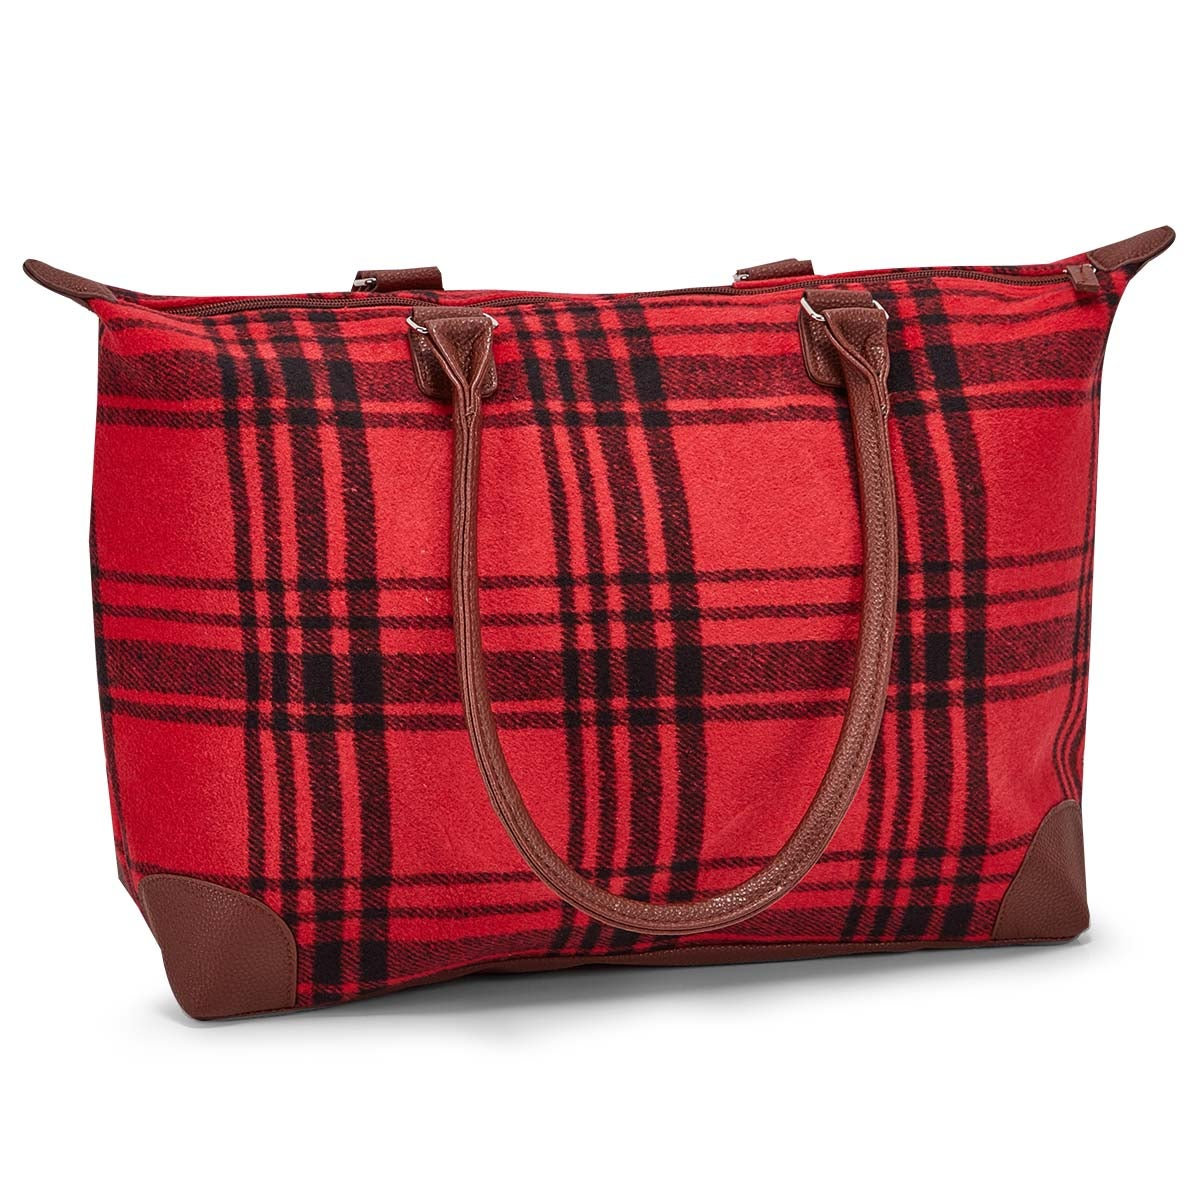 Women's red large flannel tote bag